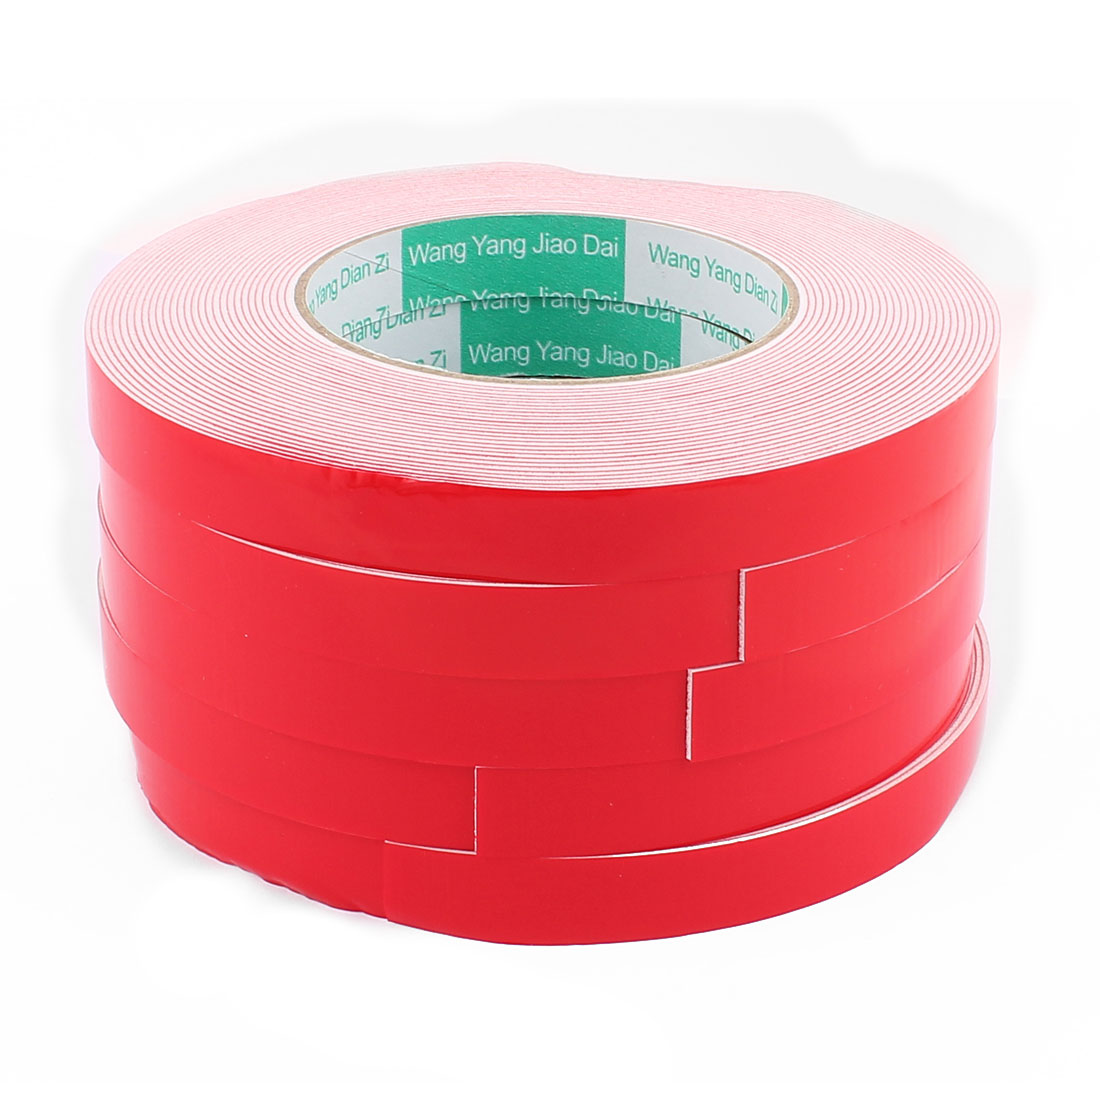 5PCS 1.5CM Width 10M Long 1MM Thick White Dual Sided Waterproof Sponge Tape for Car